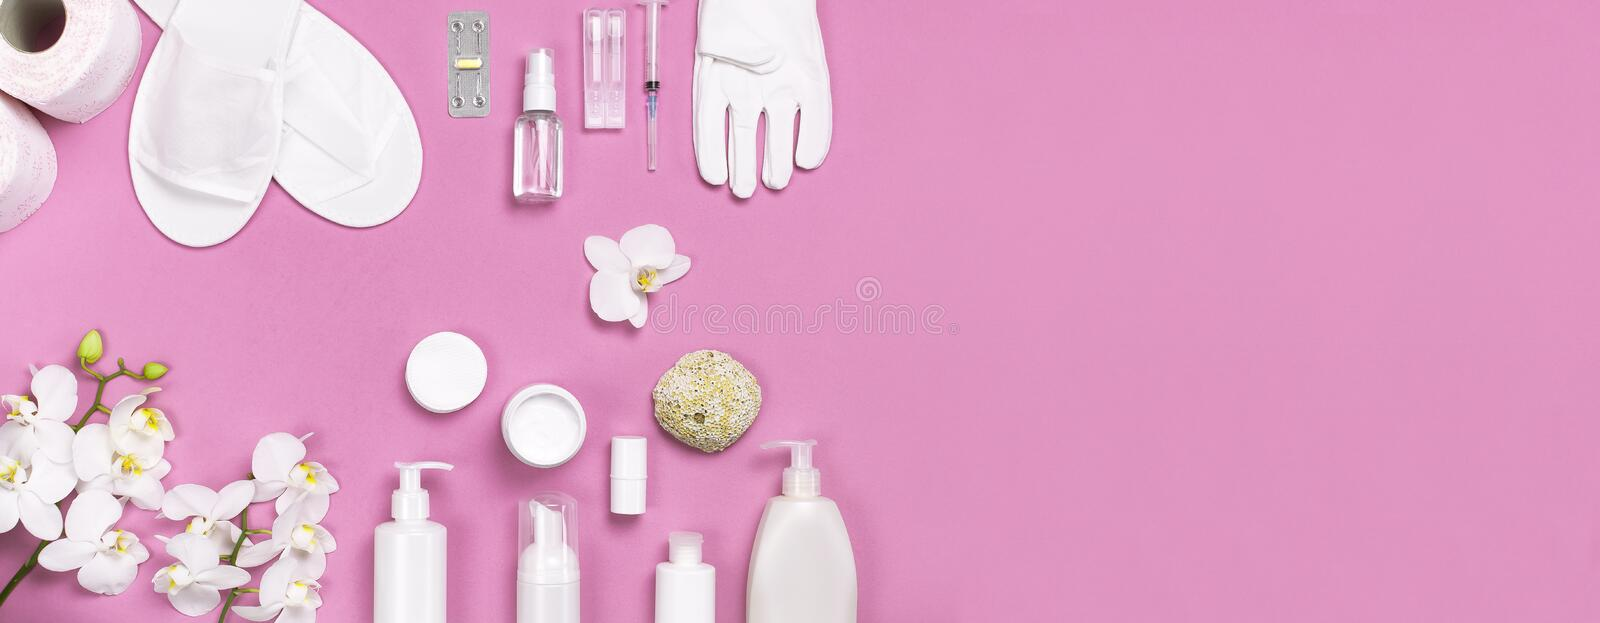 Spa concept cosmetology medicine plastic surgery branding mock-up. White cosmetic bottle gloves slippers hygiene items gasket. Tampon cotton pads injections stock photos